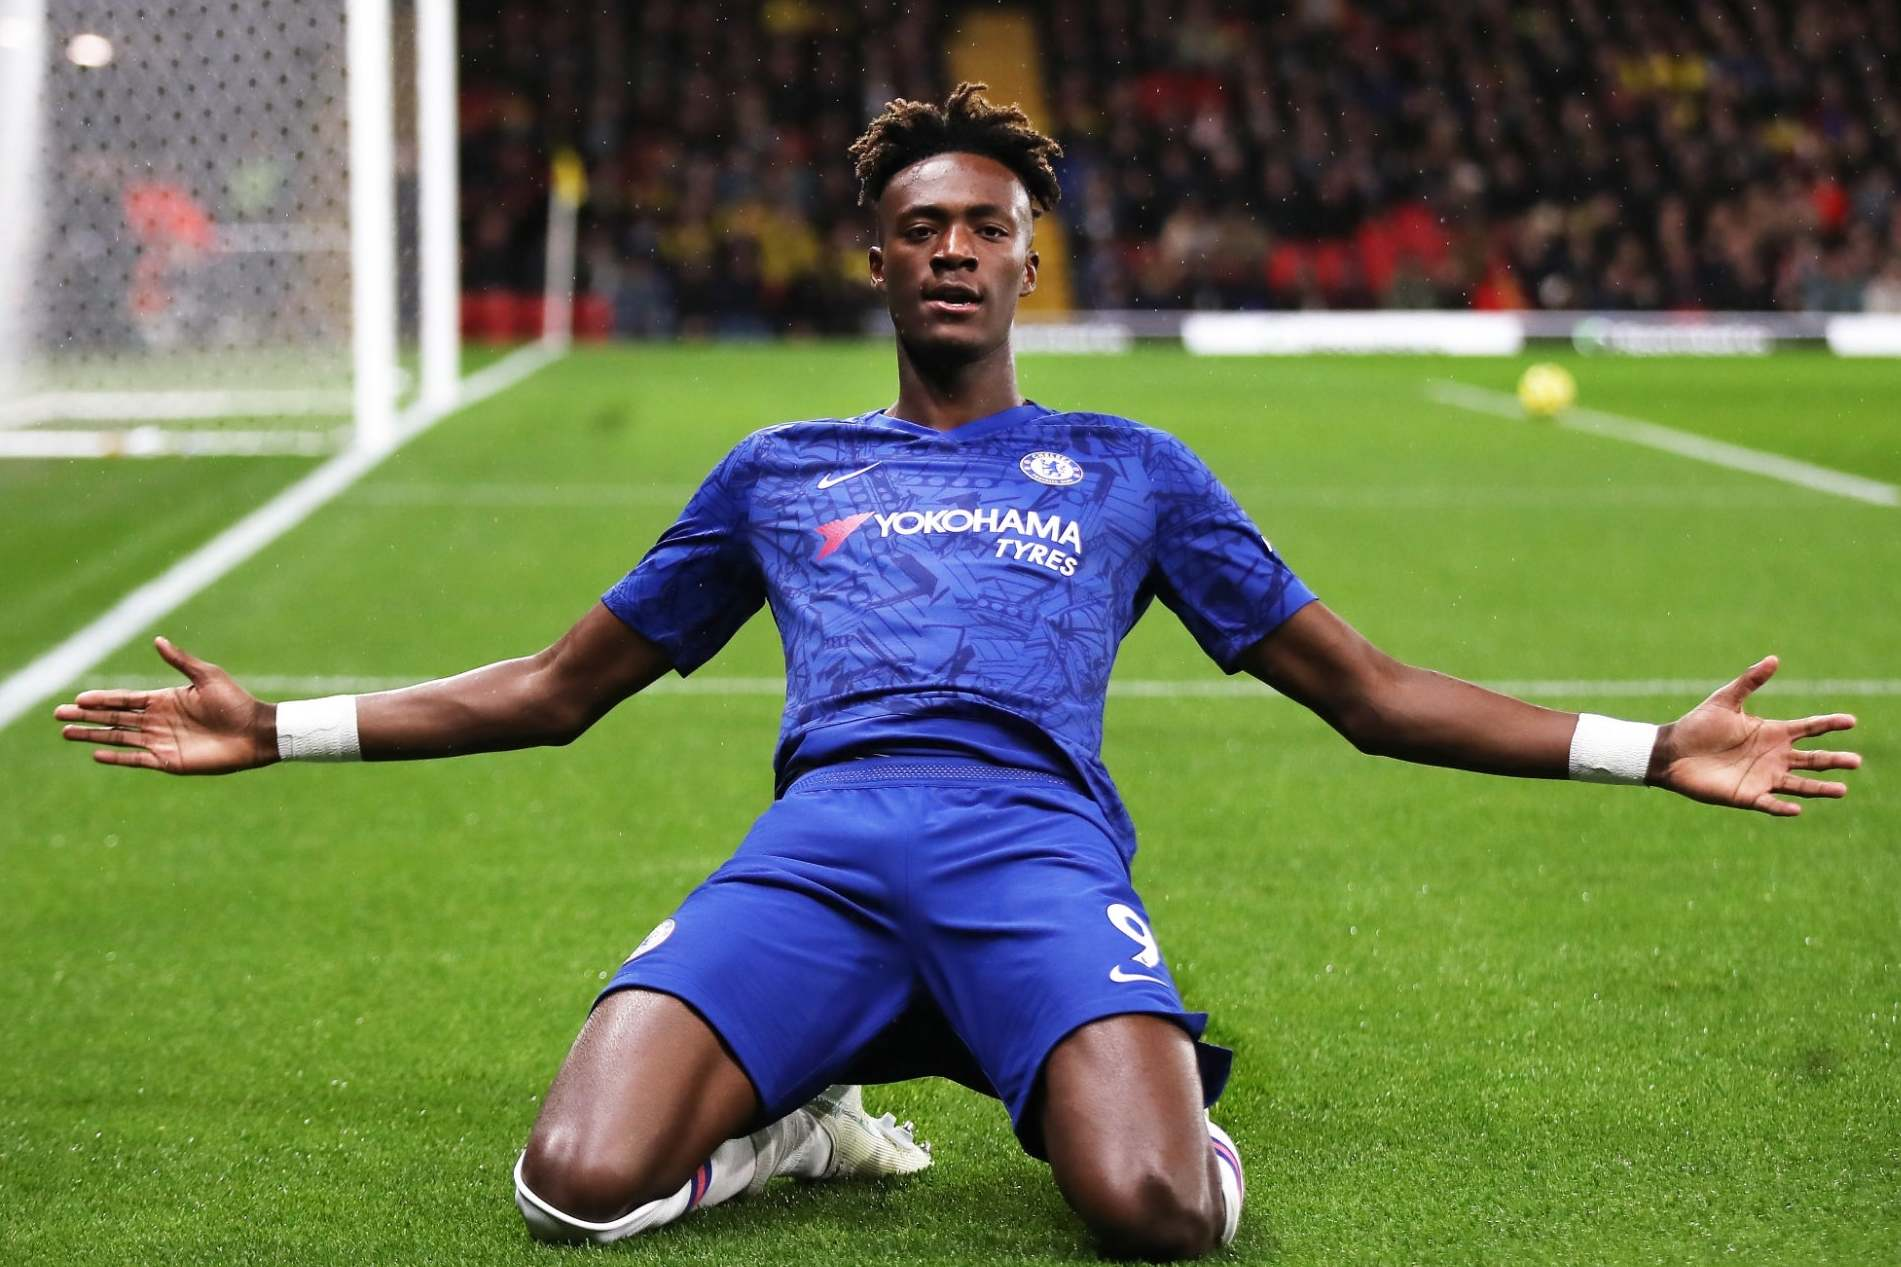 Tammy Abraham Football Career Back to Chelsea (2018–present)